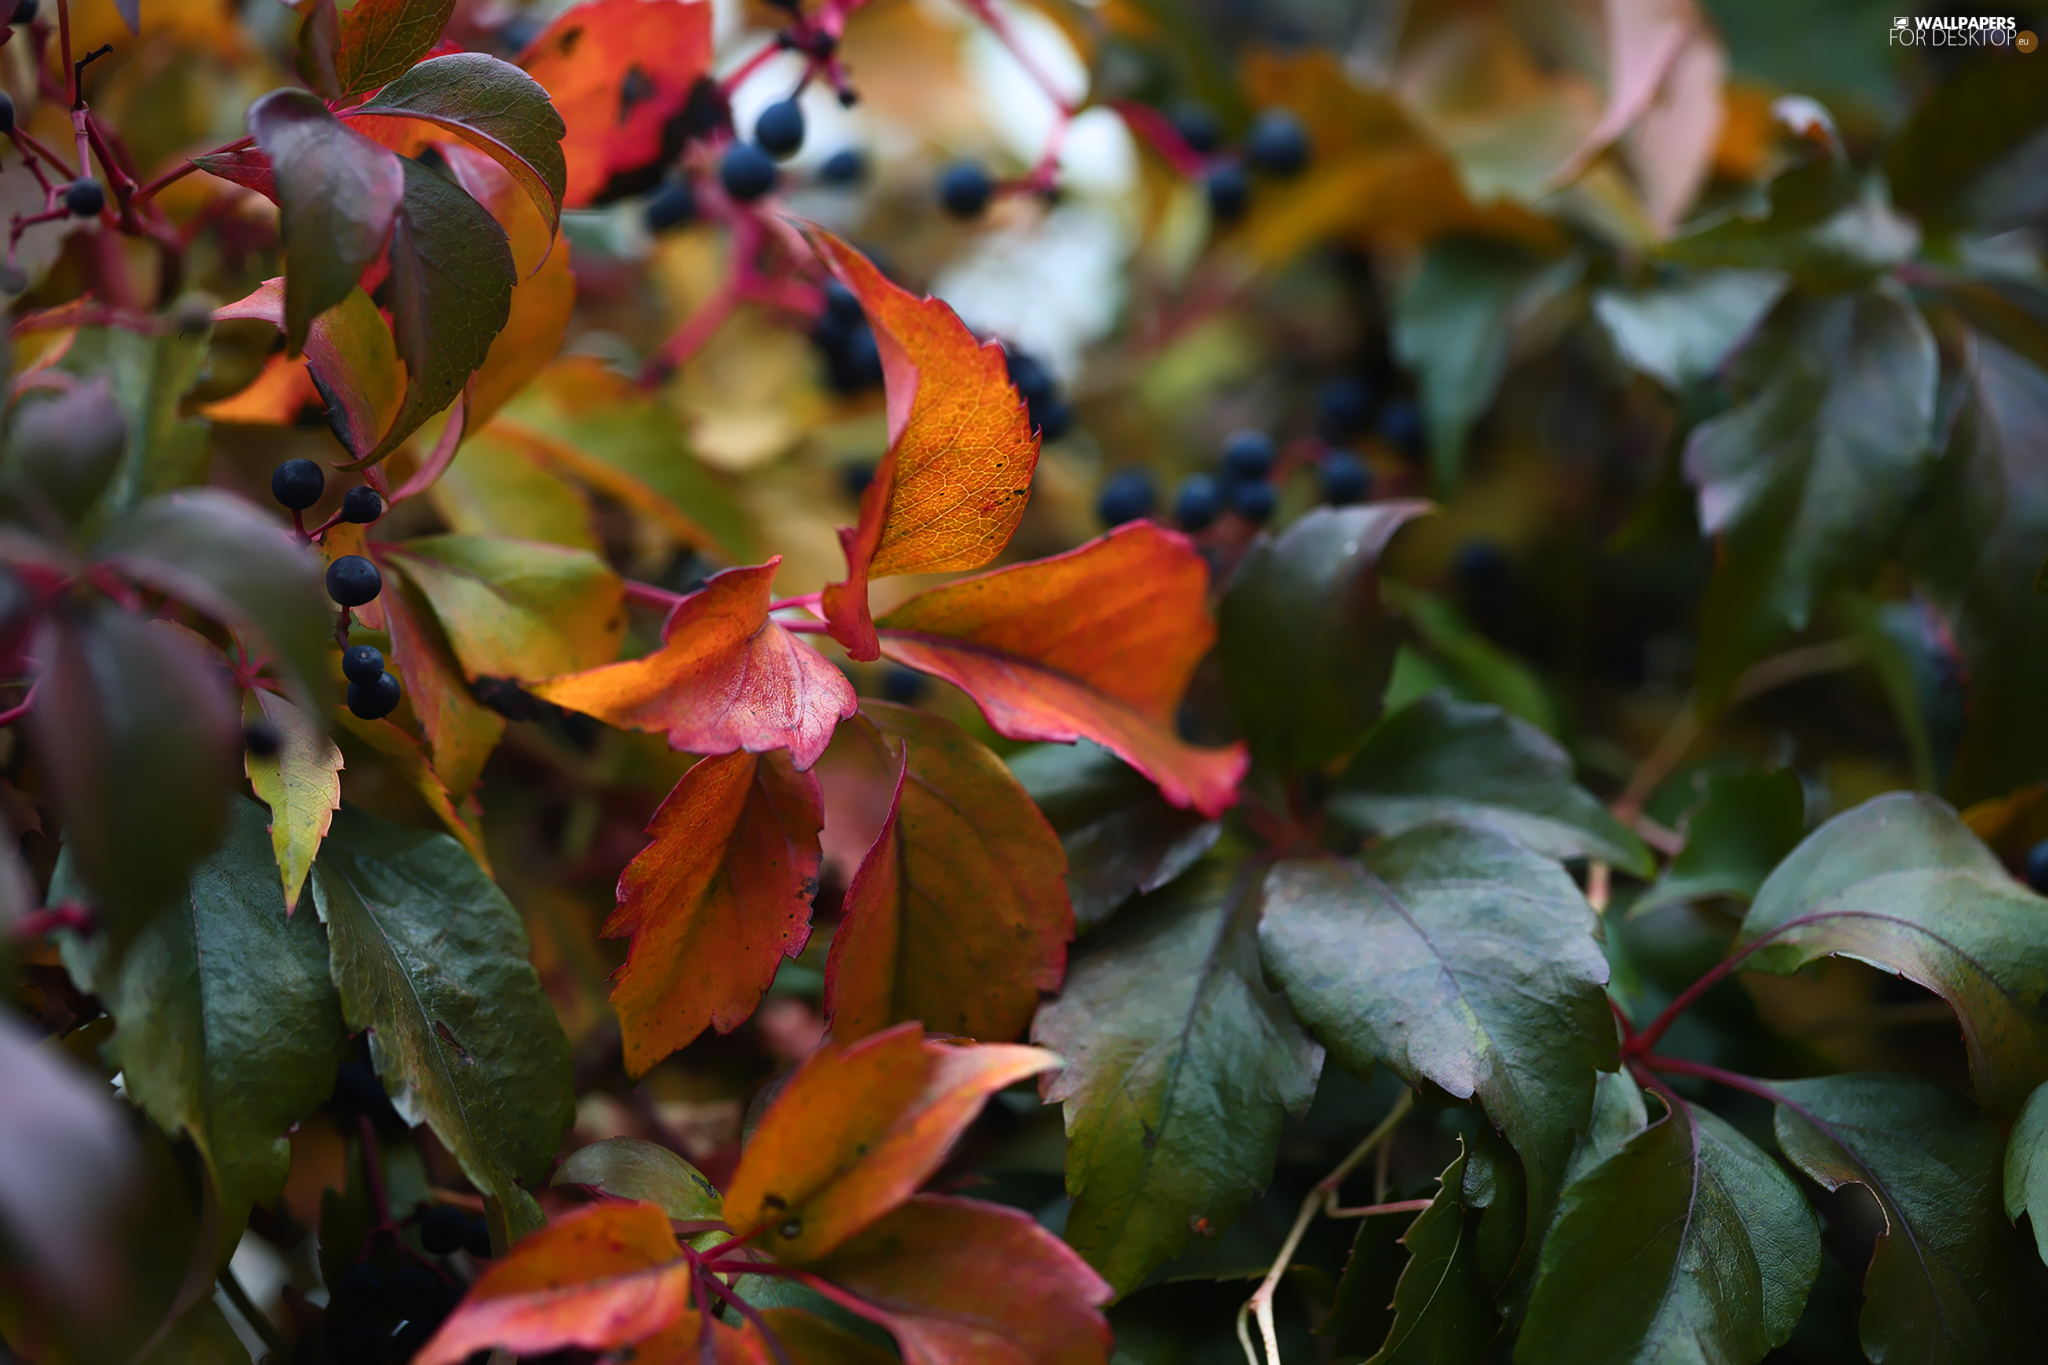 Woodbine, Leaf, Fruits, color